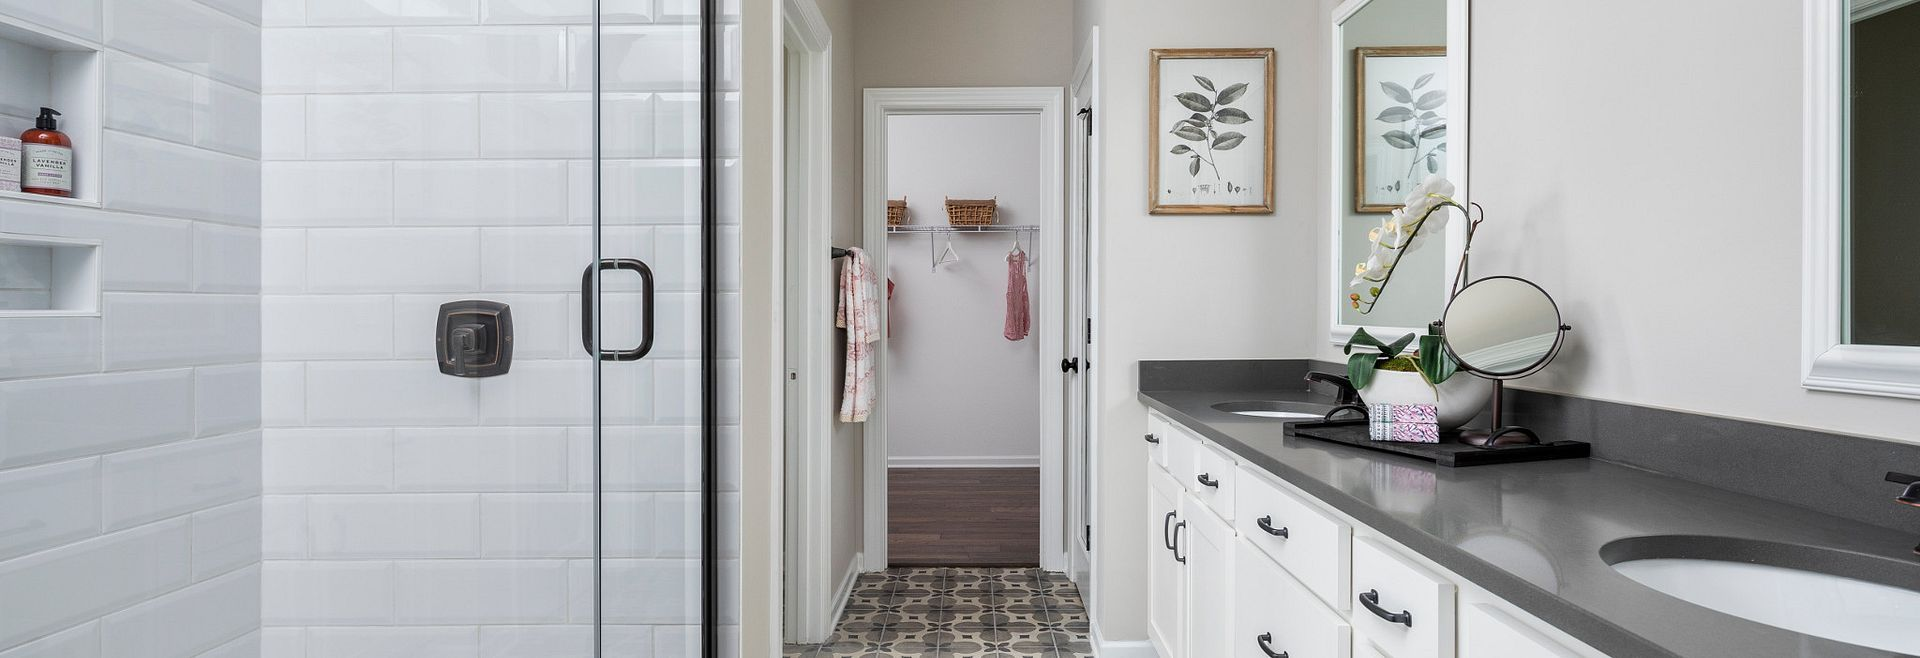 'McLean' by Shea Homes - Family - North Carolina in Charlotte